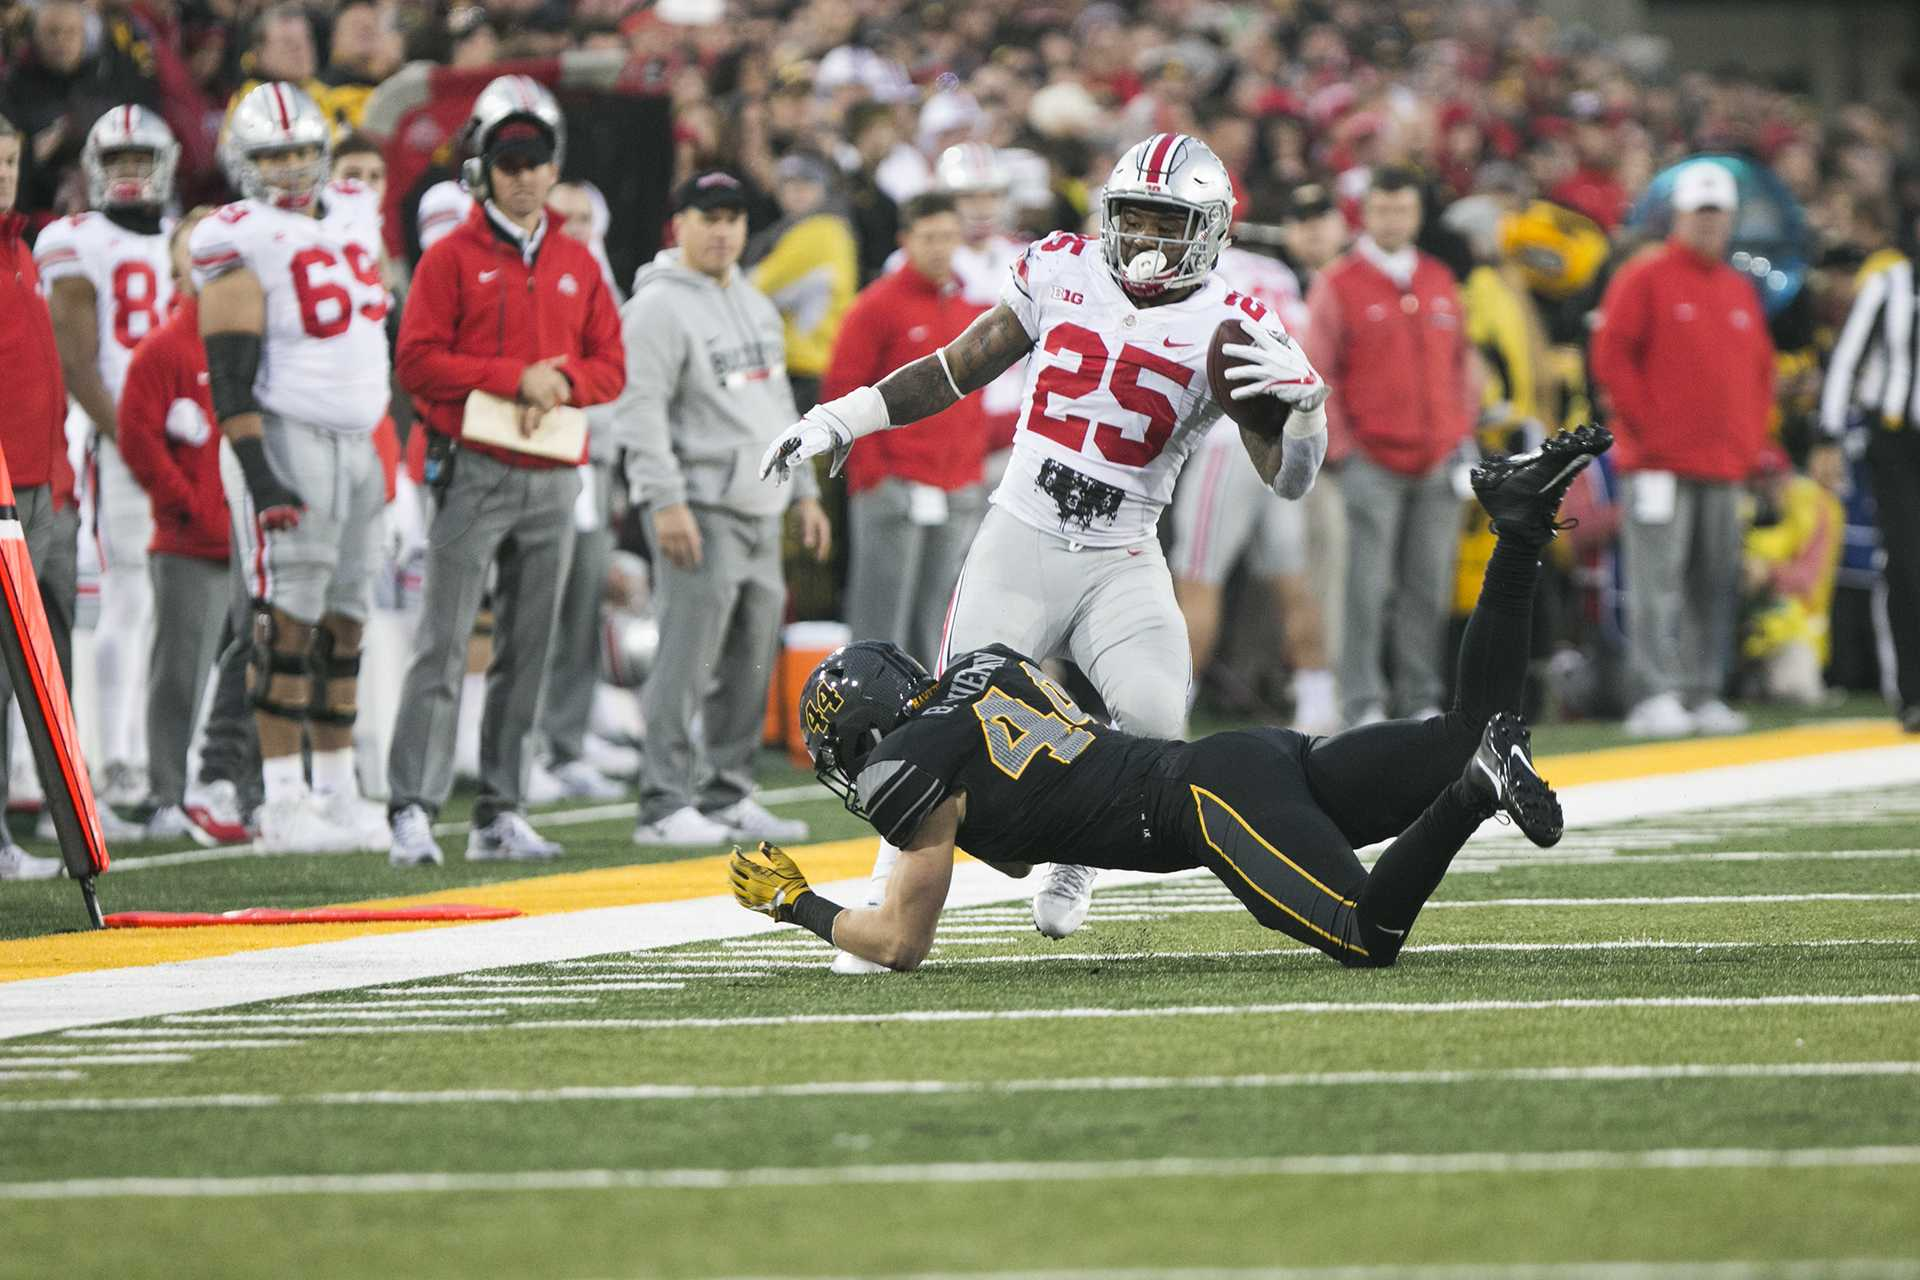 Iowa linebacker Ben Niemann trips up Ohio State running back Mike Weber during the Iowa/Ohio State football game in Kinnick Stadium on Saturday, Nov. 4, 2017. The Hawkeyes defeated the Buckeyes in a storming fashion, 55-24. (Joseph Cress/The Daily Iowan)